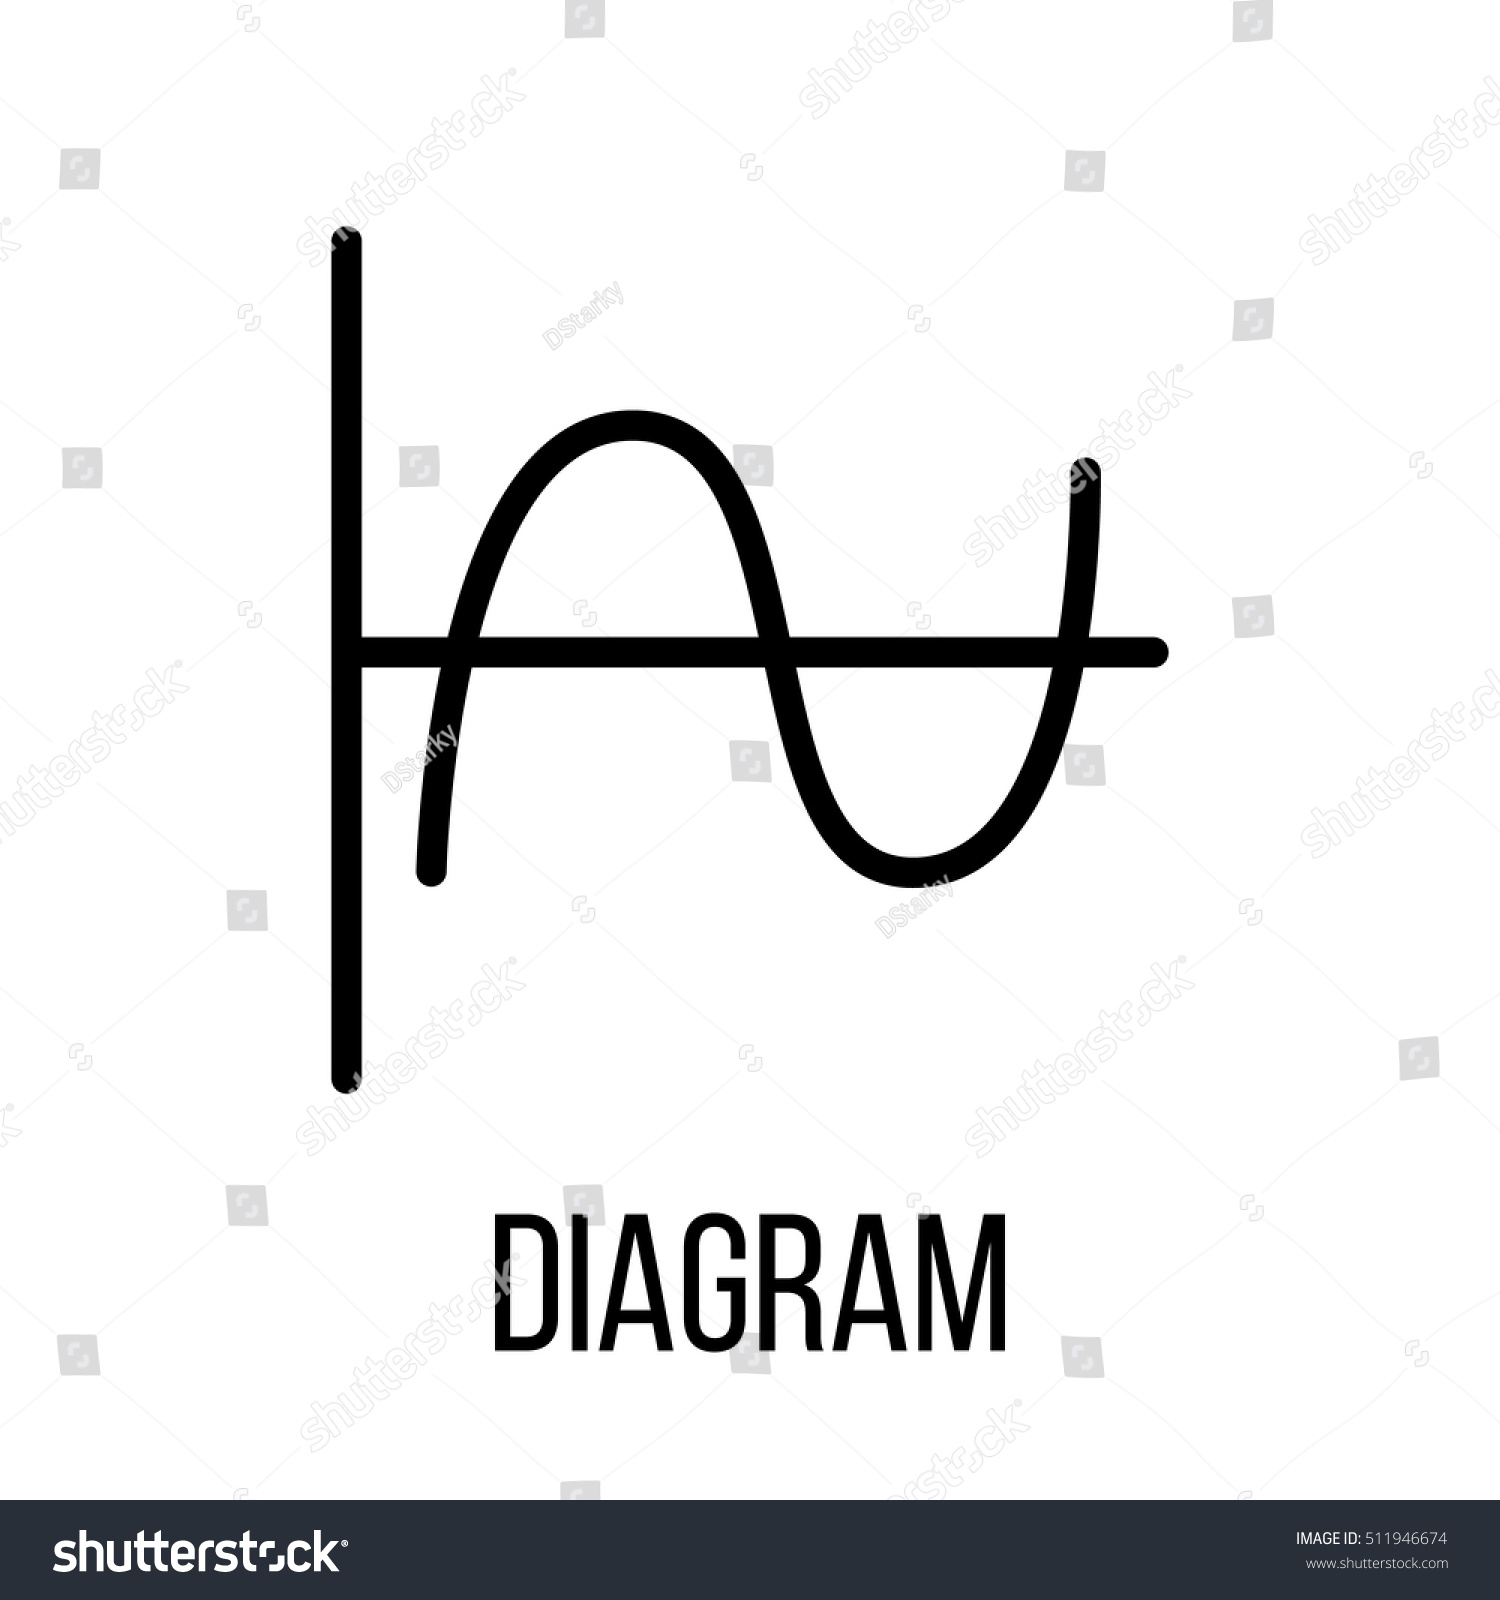 Diagram icon logo modern line style stock vector 511946674 diagram icon or logo in modern line style high quality black outline pictogram for web ccuart Images